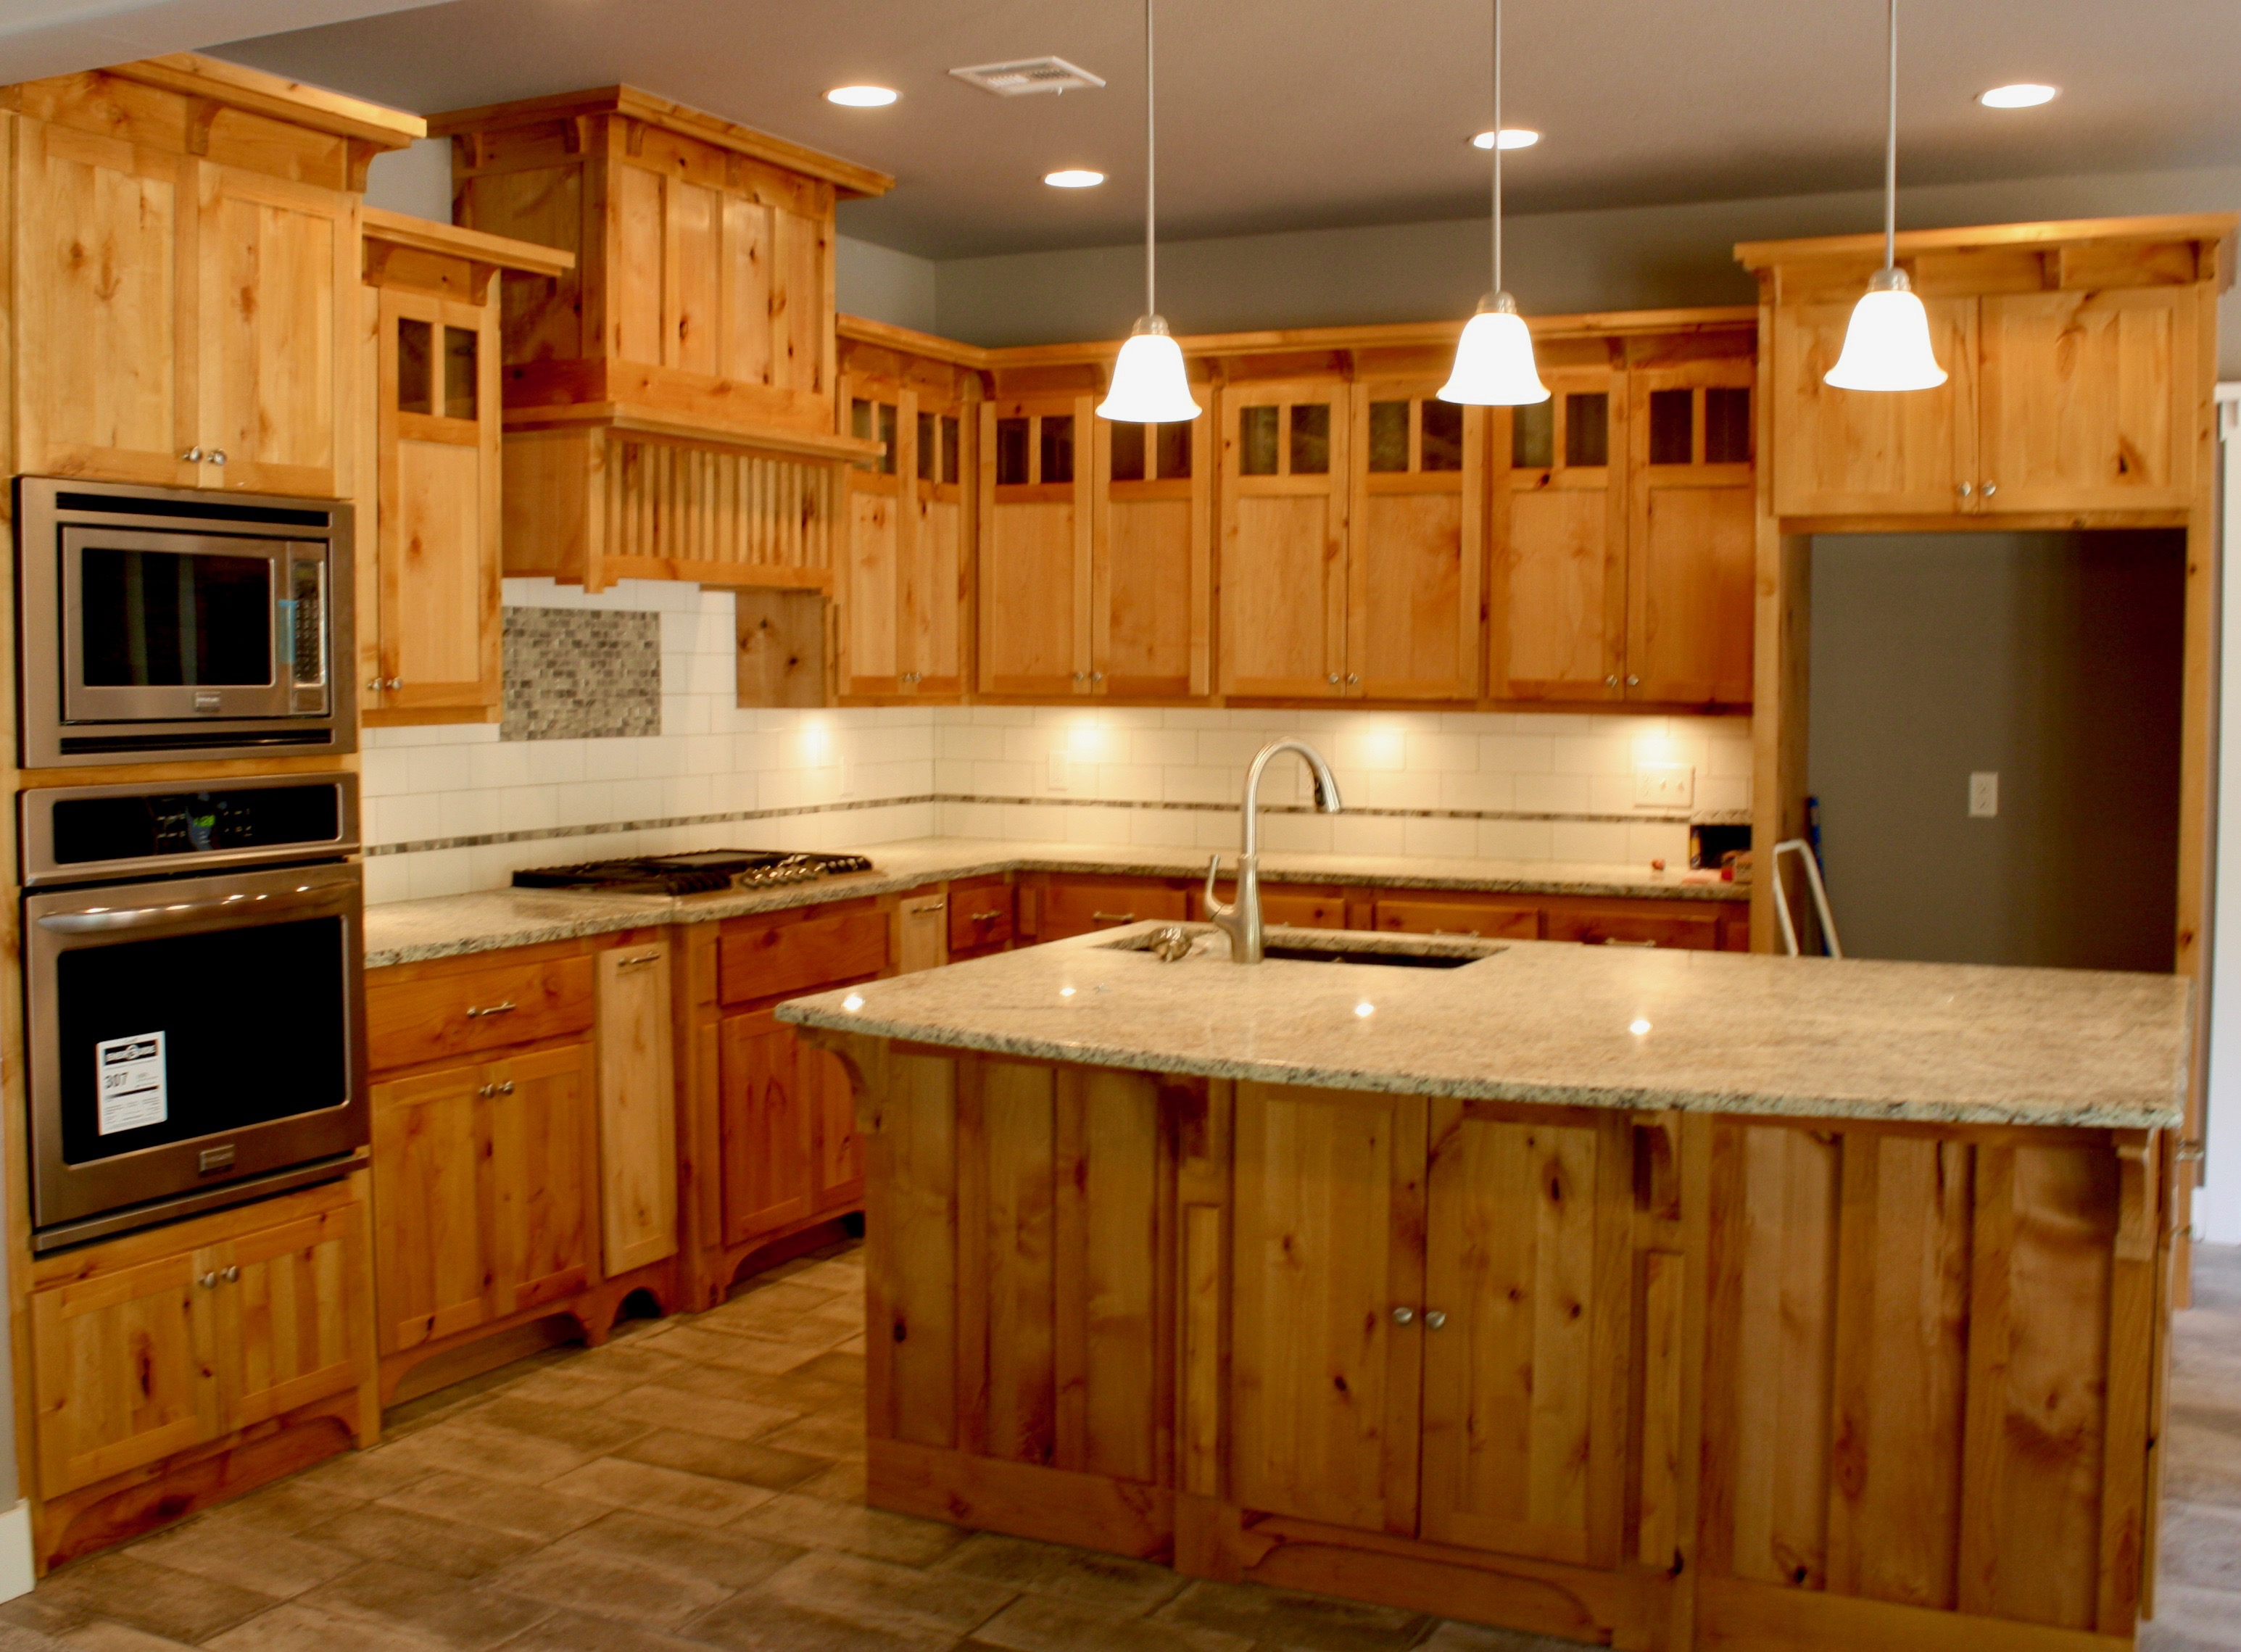 Delicieux Kitchen,stove,cabinets,